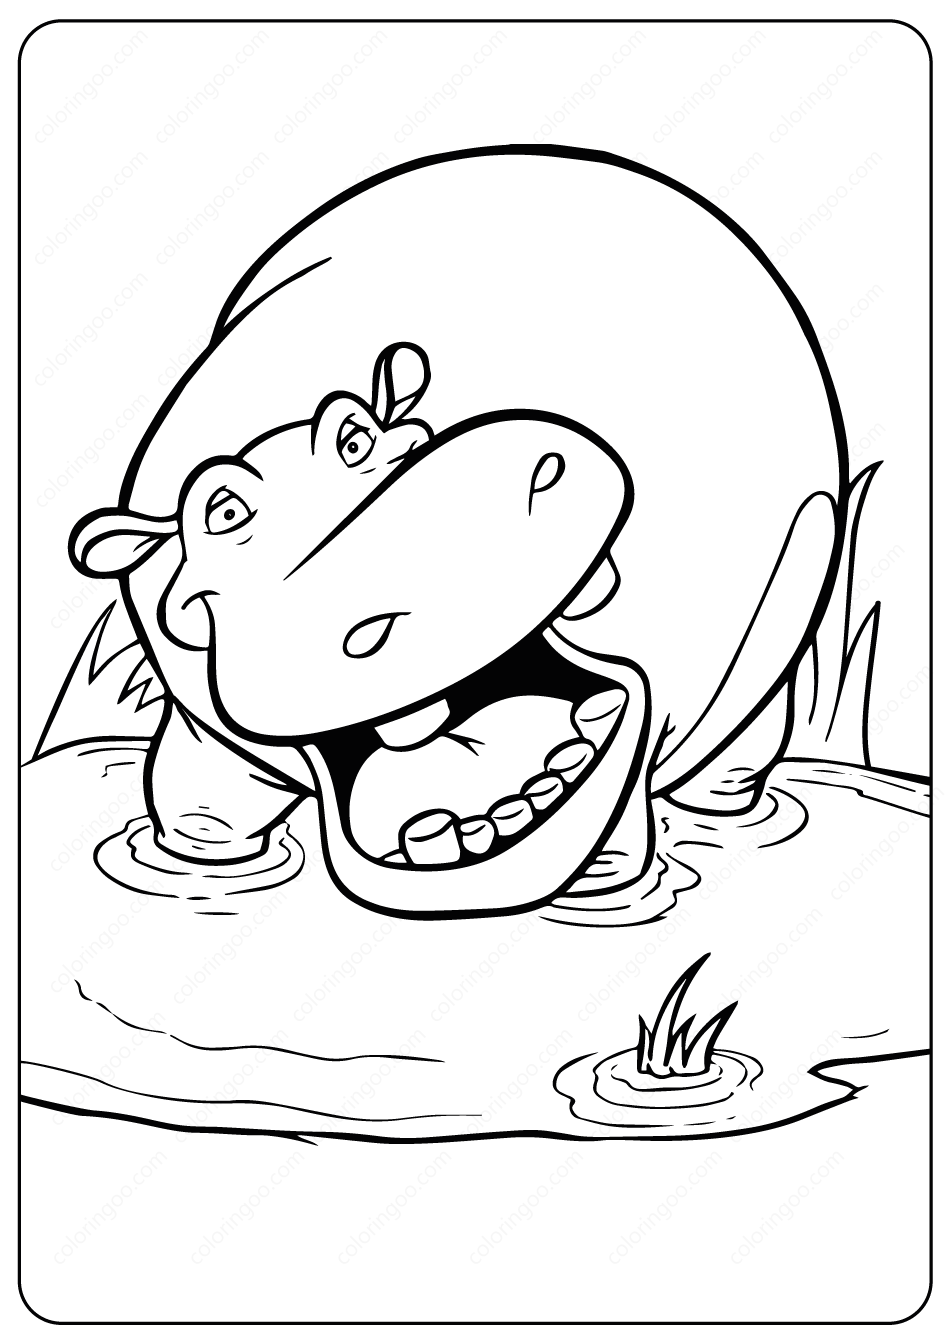 10 Cute Free Printable Hippo Coloring Pages For Toddlers | 1344x950